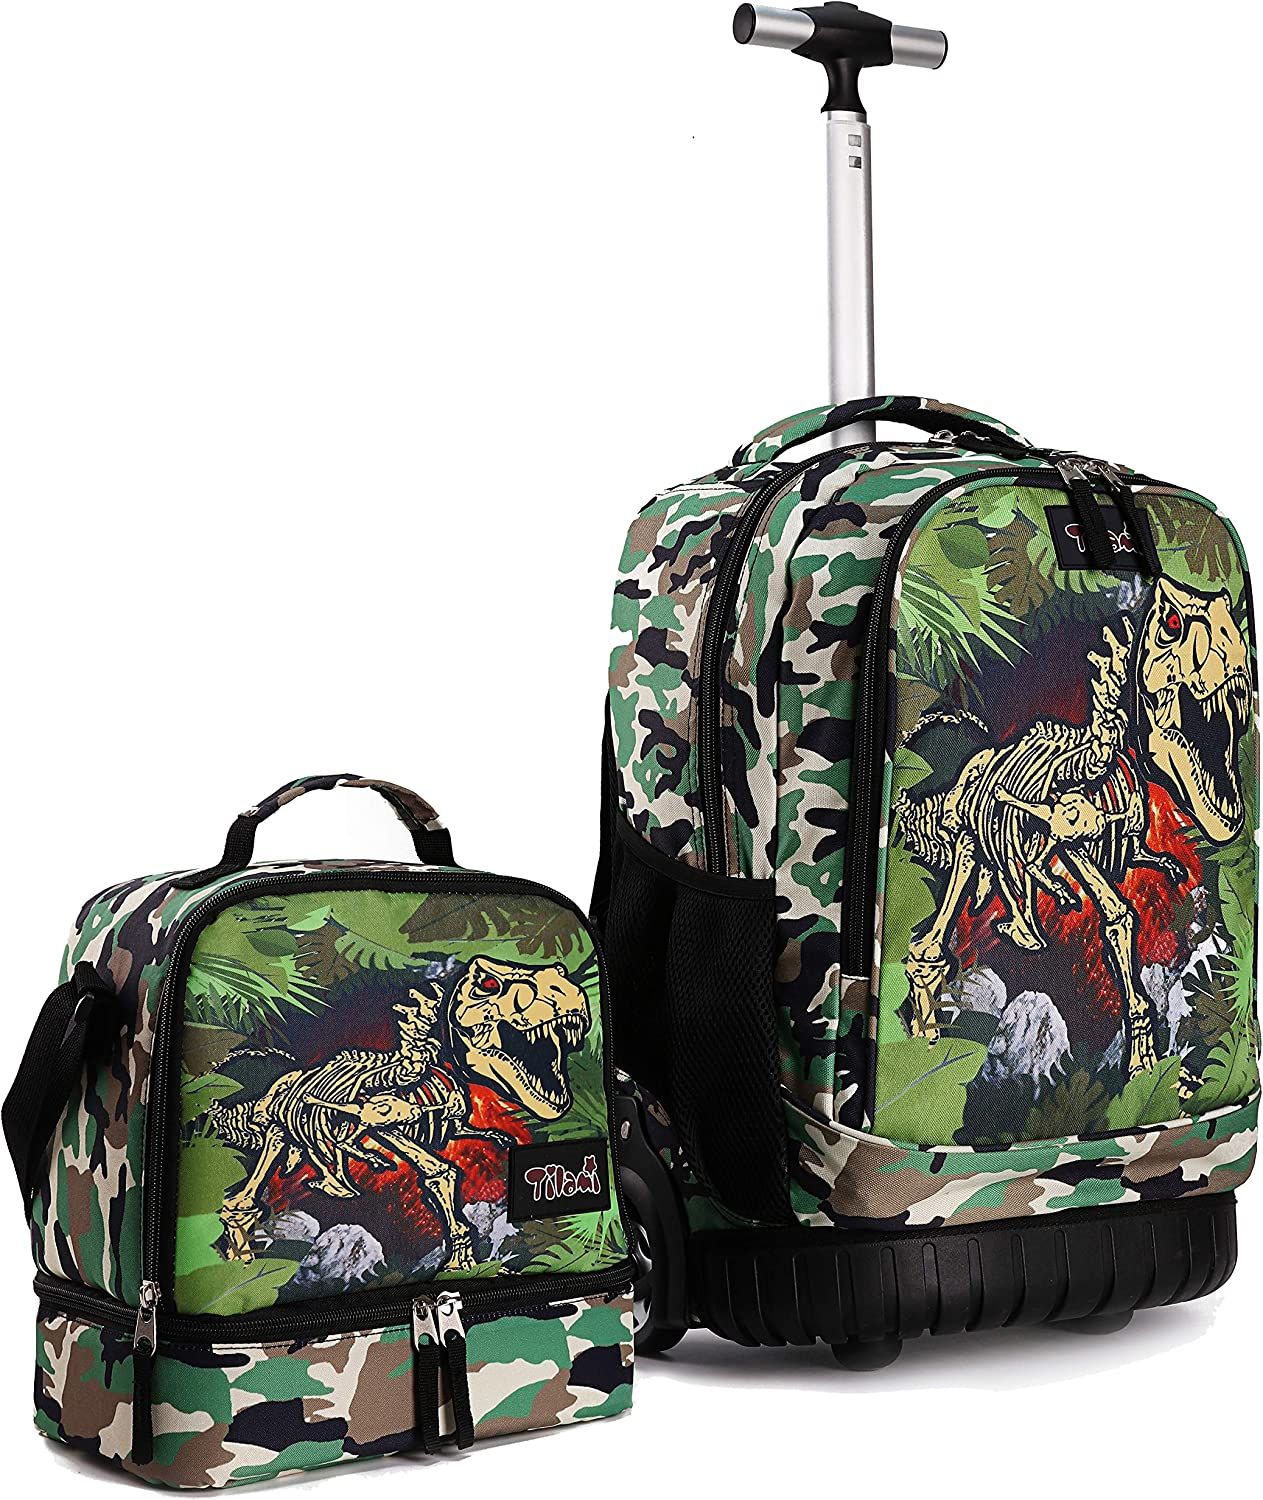 Tilami Rolling Backpack 19 inch with Lunch Bag Wheeled Laptop Backpack, Dinosaur Camouflage